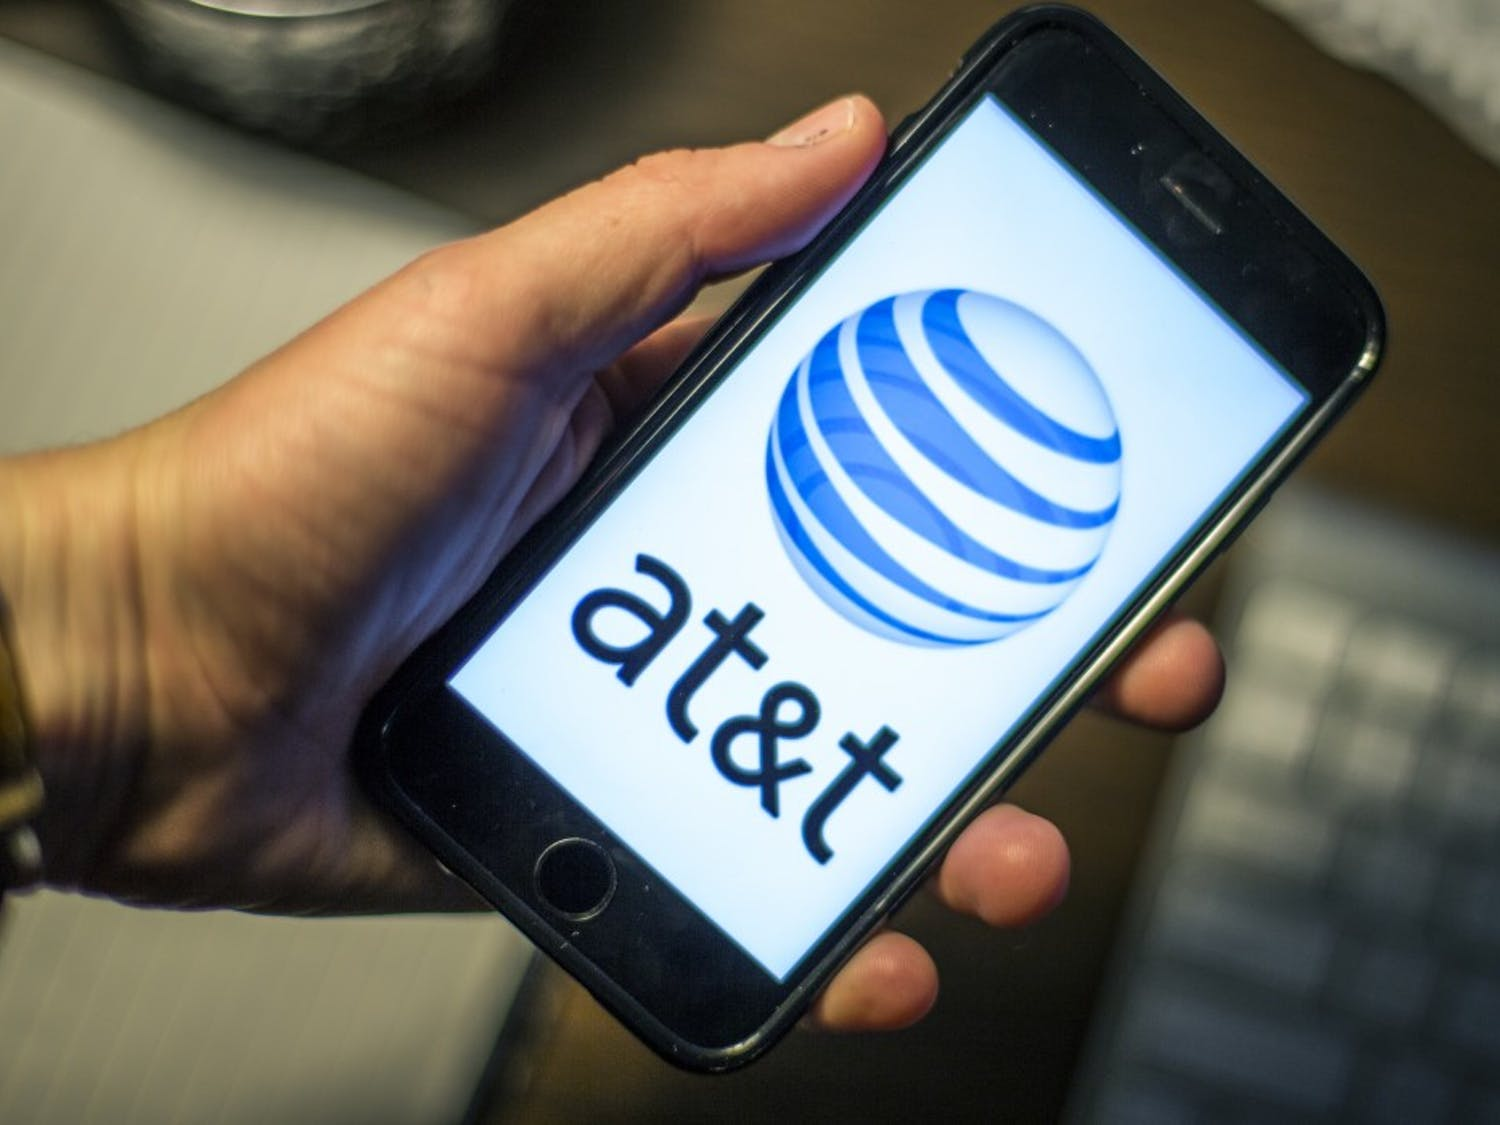 The attempted fraud happened at the AT&T store on Gammon Road.